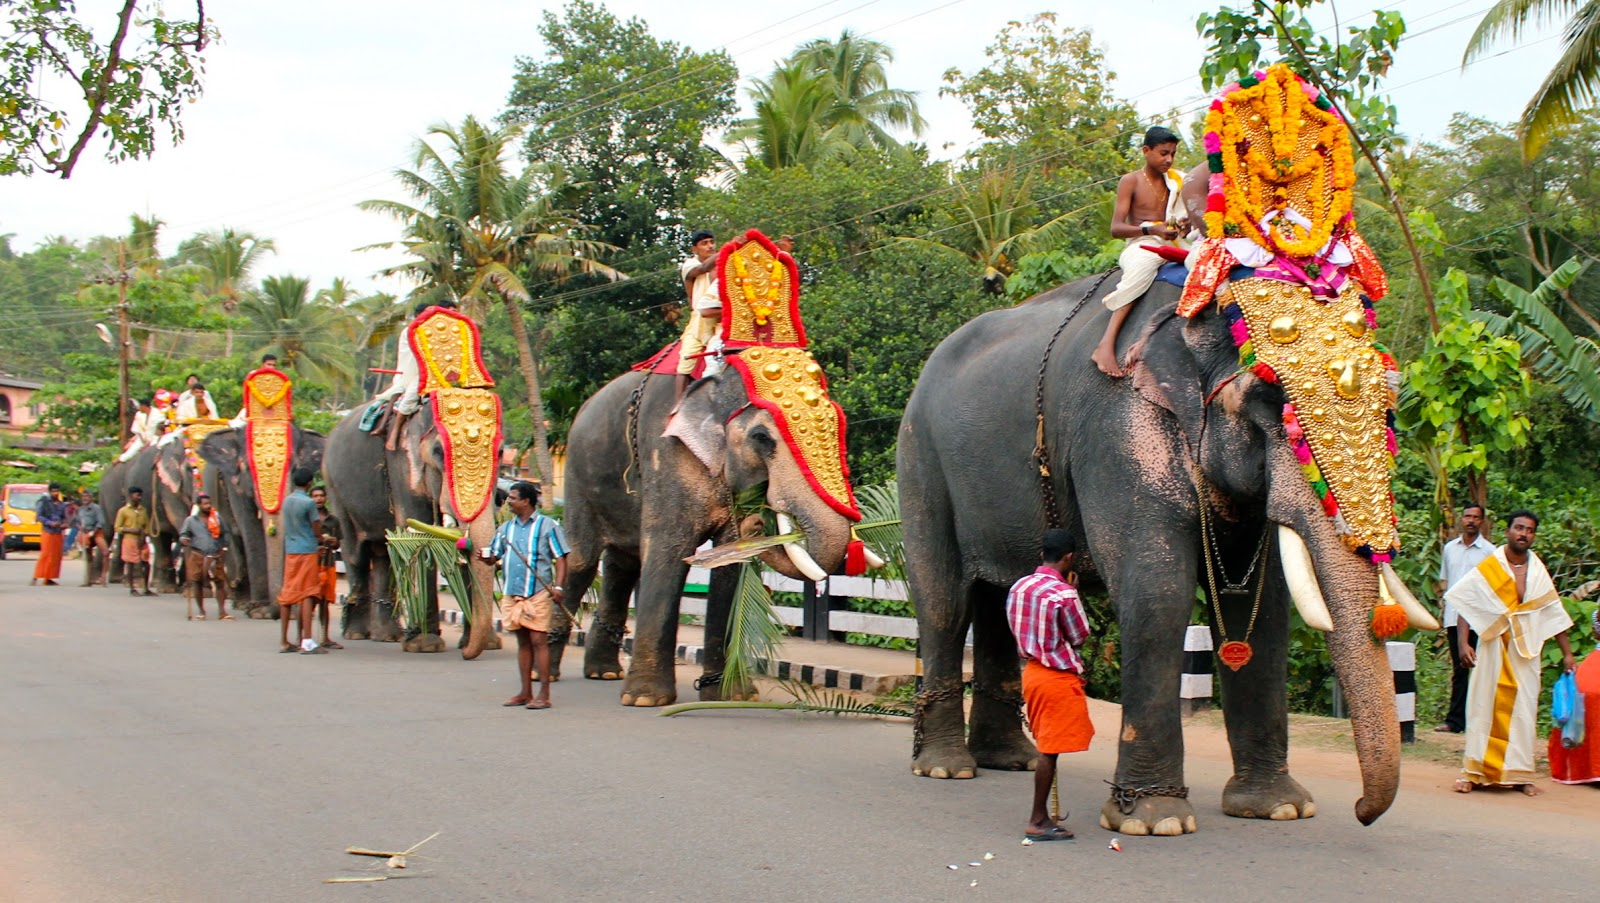 Kerala Special Package Worldescape Tours All elephant png images are displayed below available in 100% png transparent white background for free download. worldescapetours